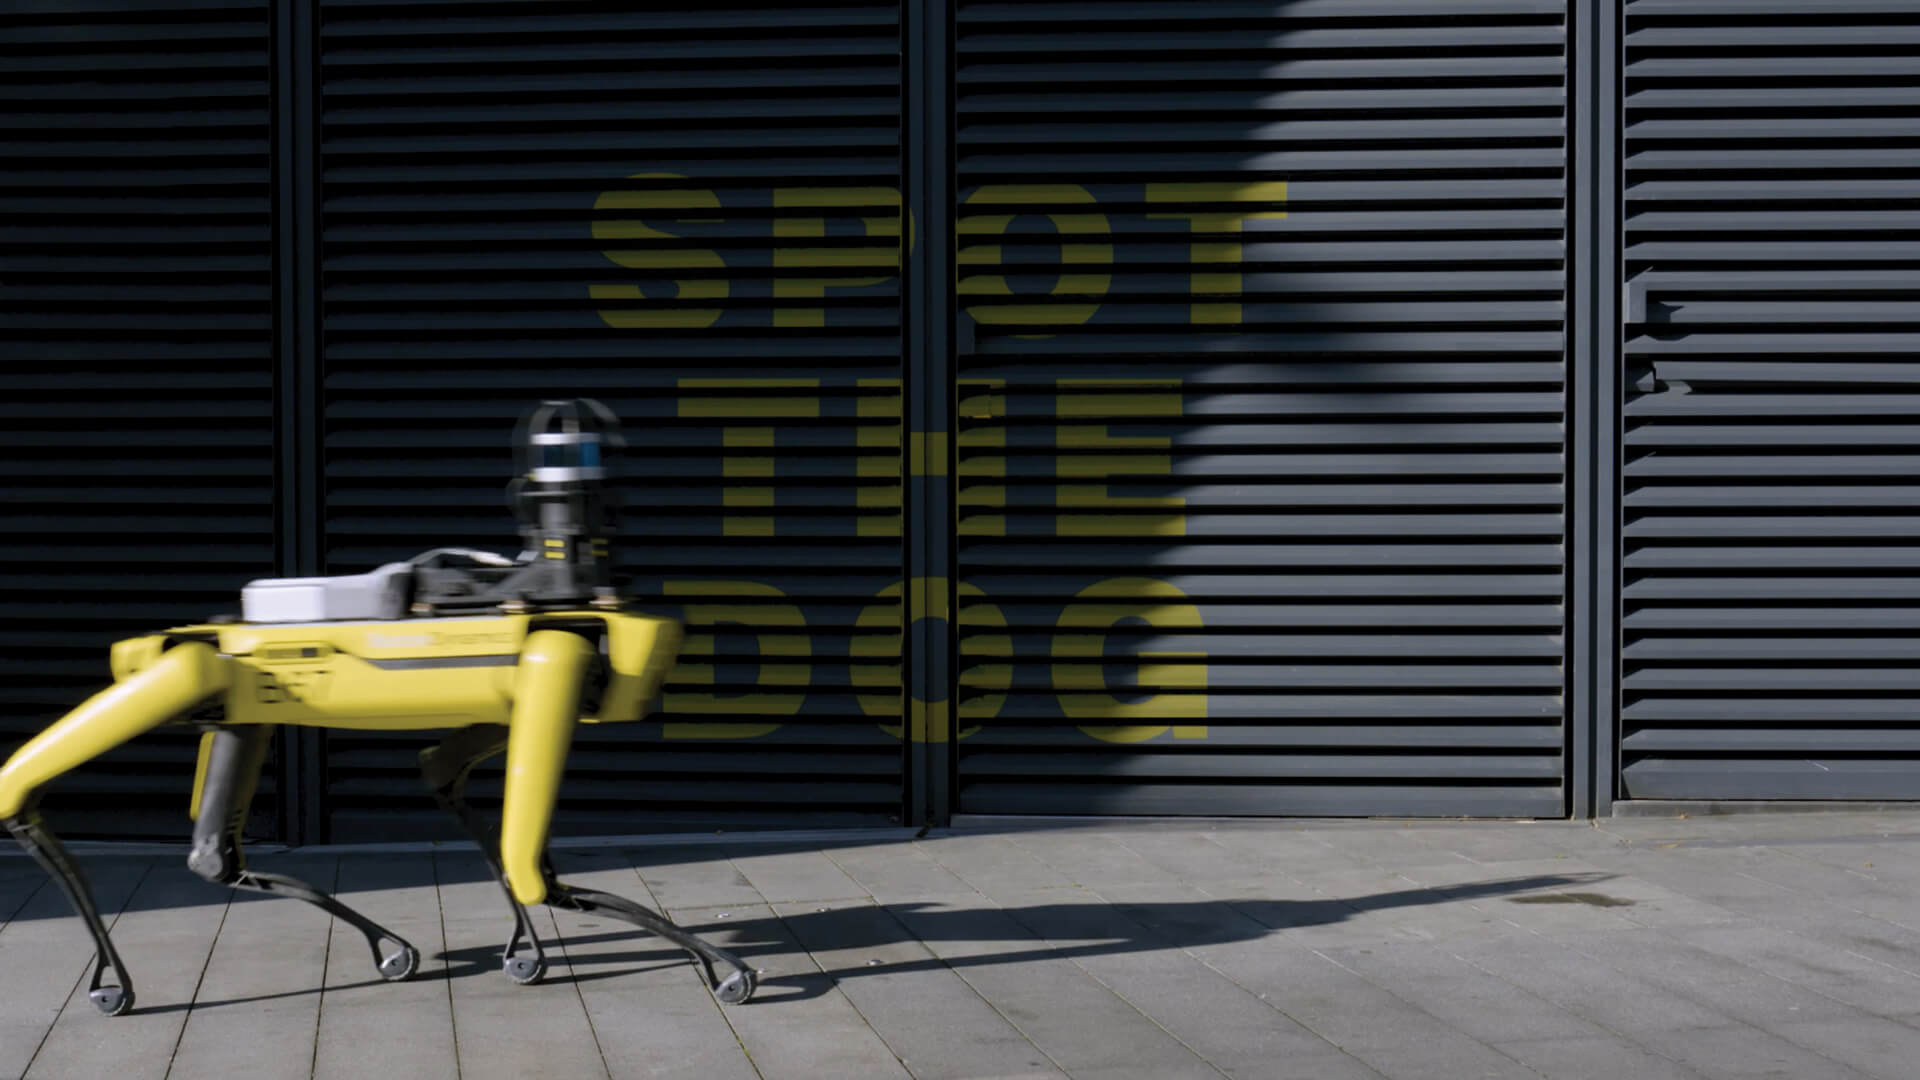 SPOT the robotic dog by Boston Dynamics, employed at Foster+Partners' latest project site | SPOT Robotic Dog | Foster+Partners and Boston Dynamics | STIRworld